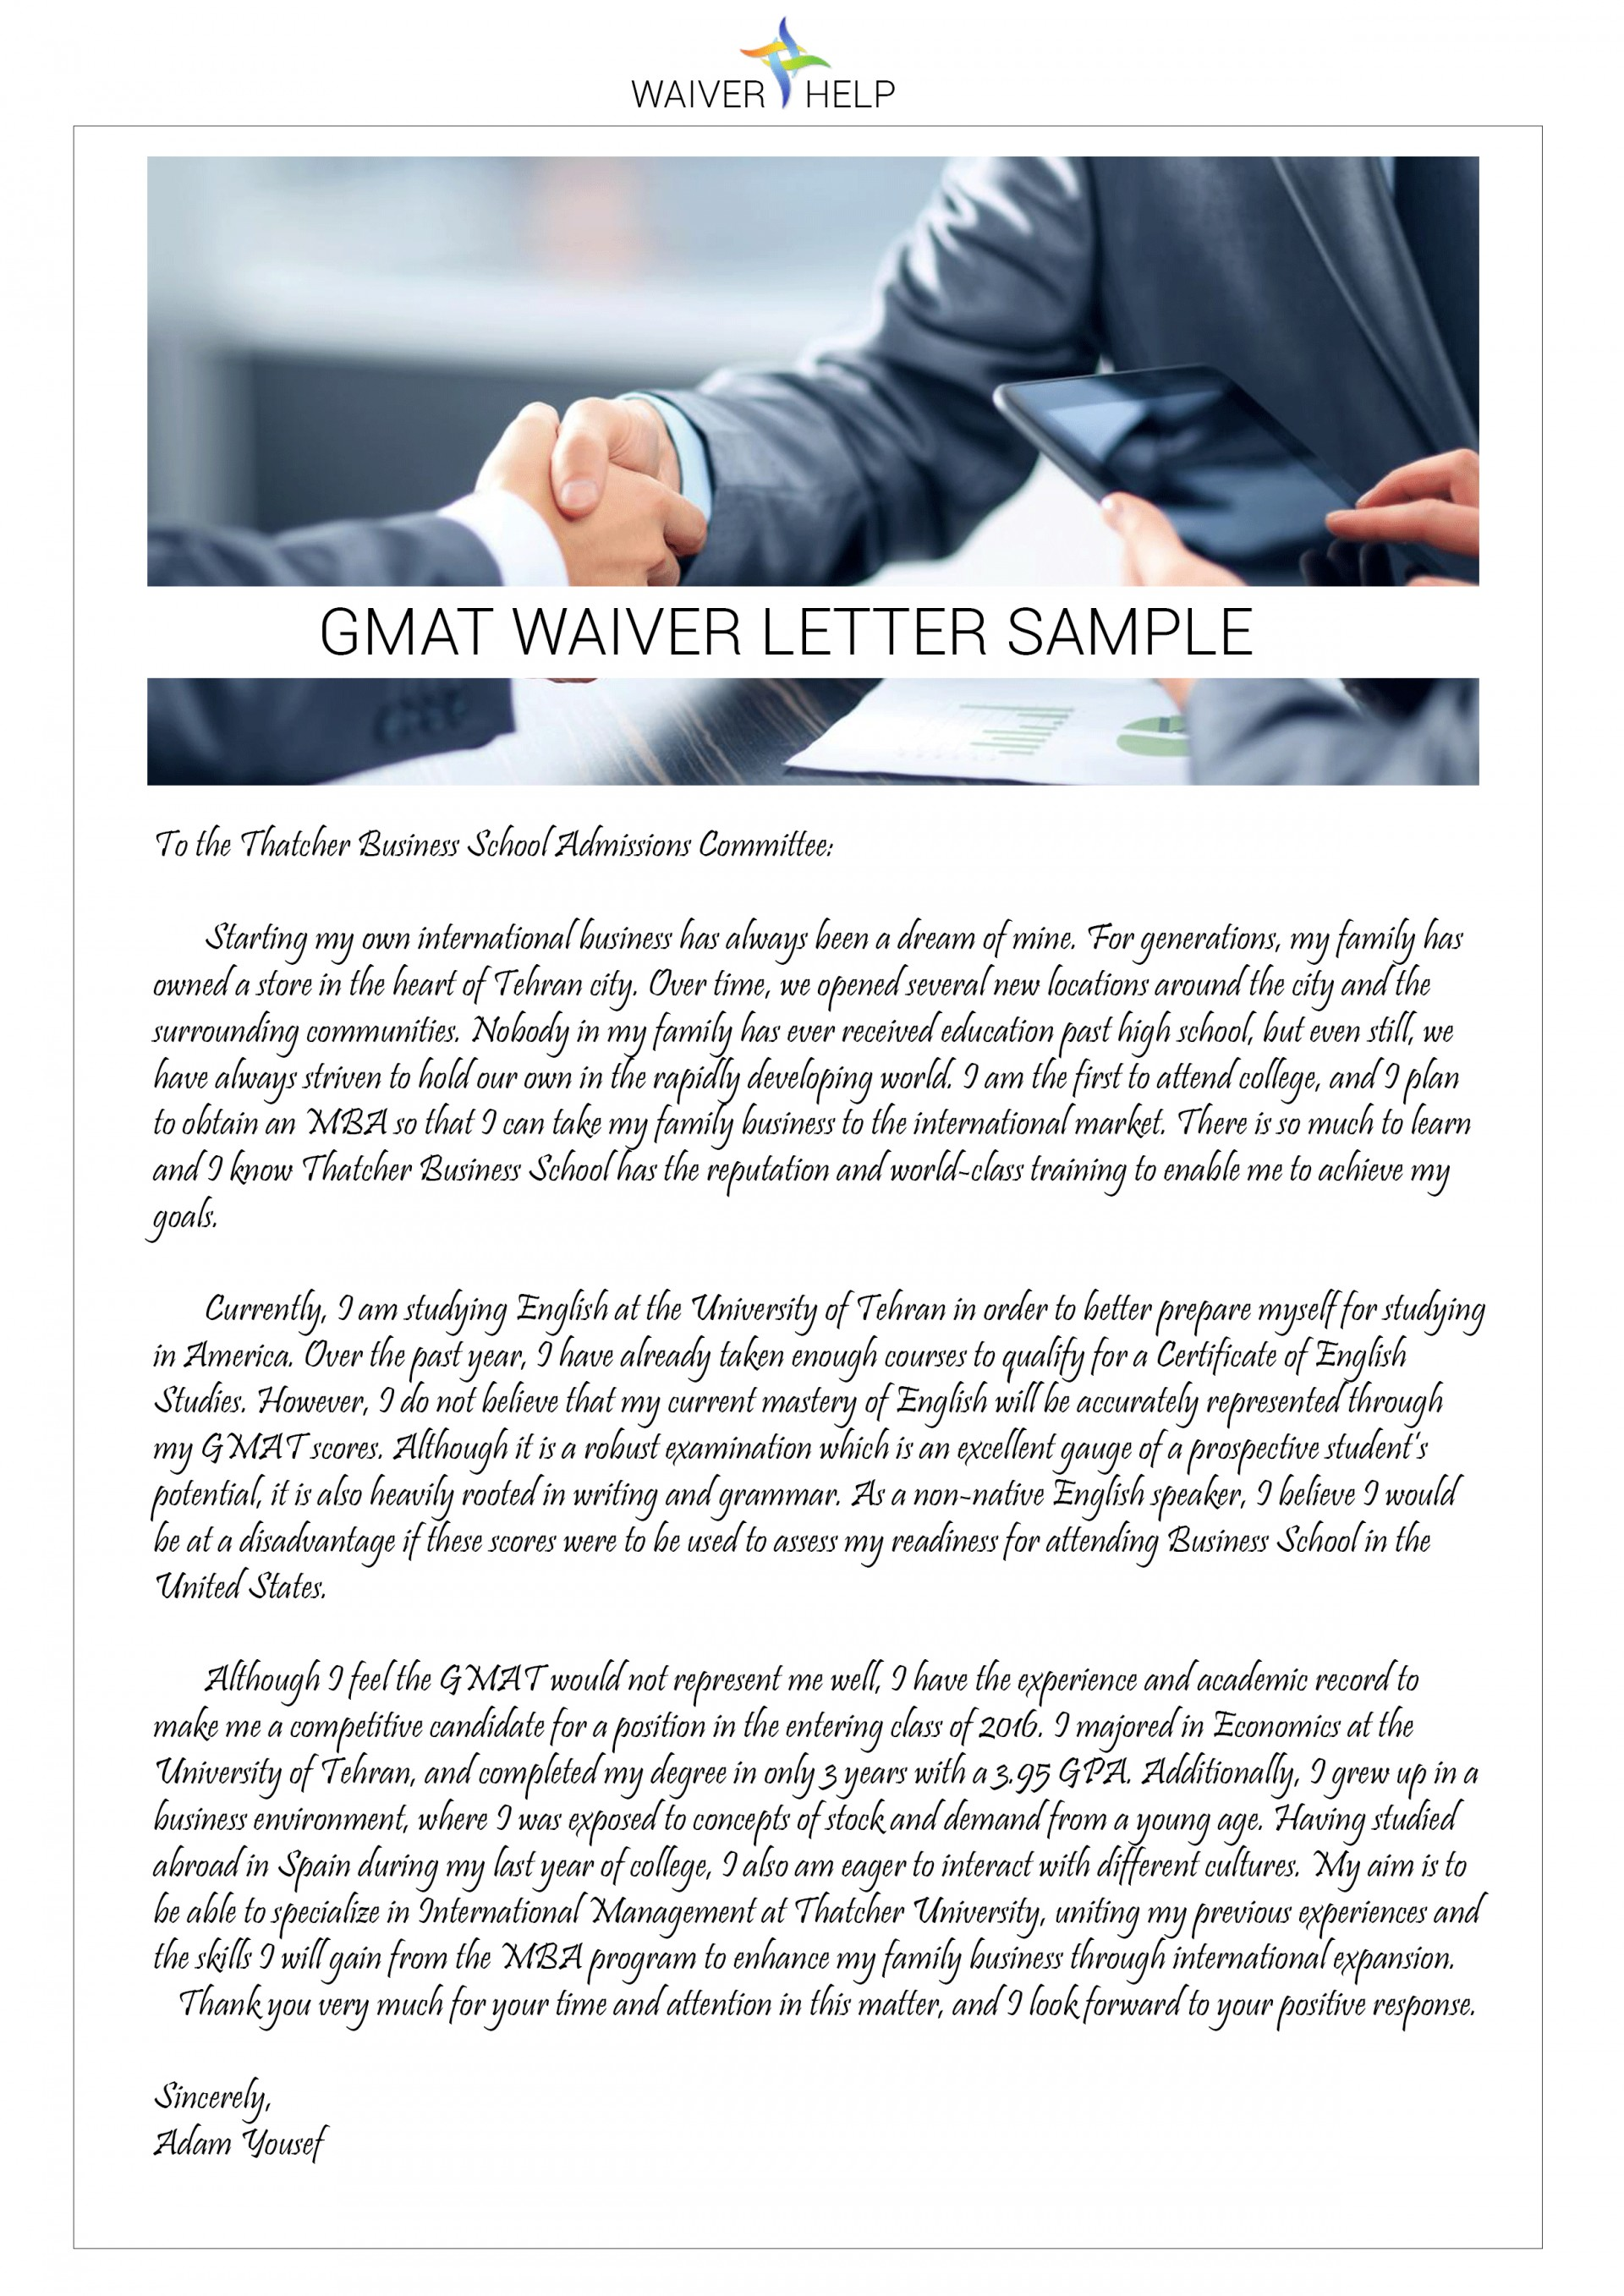 011 Gmat Essay Sample Example Awesome Gre Essays Resume Daily L Shocking Waiver Topics Awa Free Download 1920